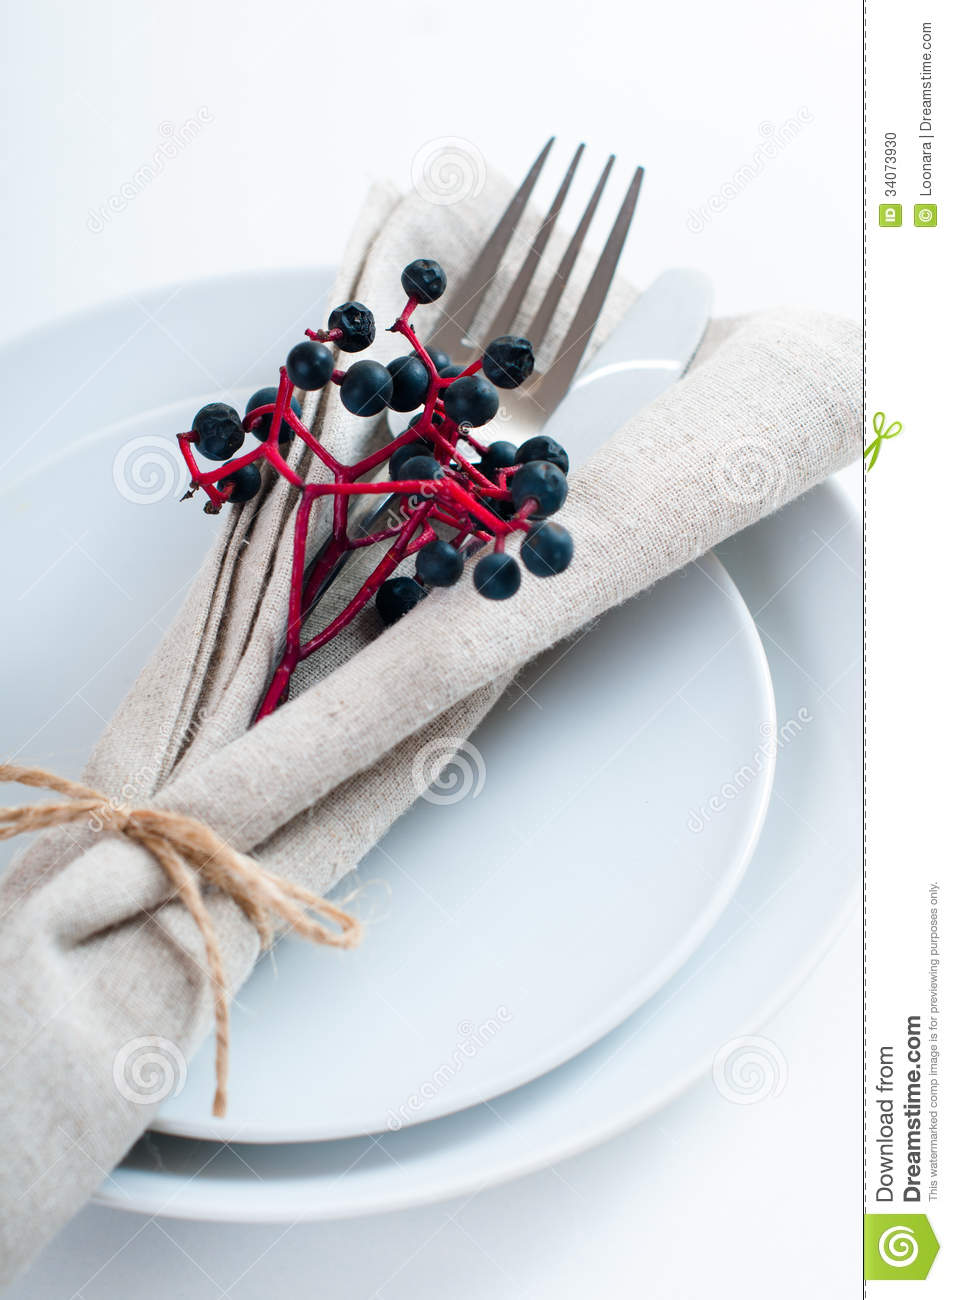 Autumn table setting with wild grapes dried herbs and berries in a